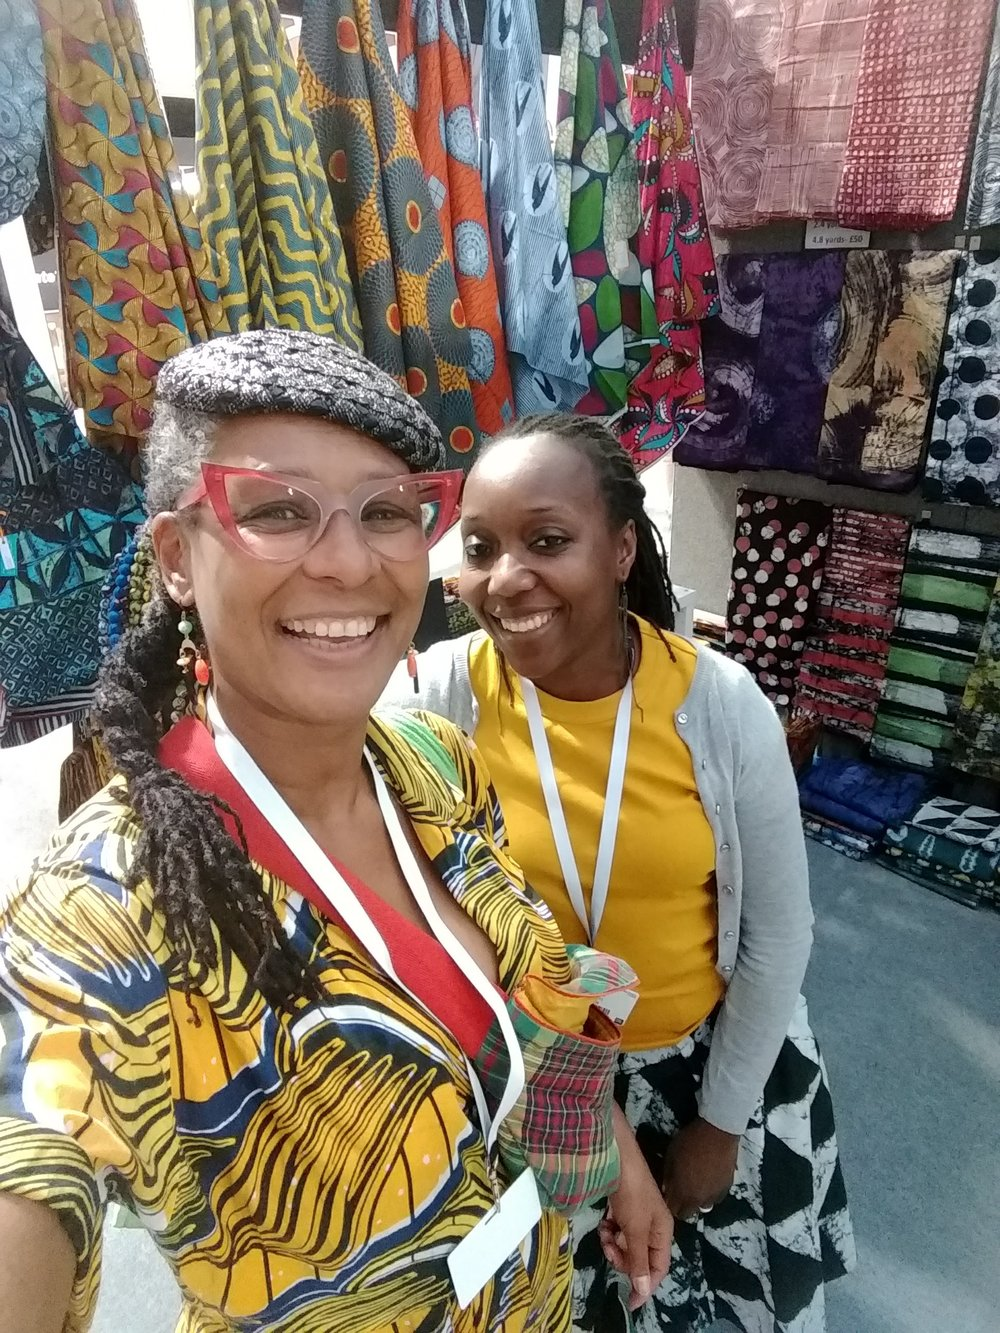 Met up with one of my favourites, Dolape, owner of Urbanstax at my second stint at The Knitting and Stitching Show, this time at Alexandra Palace. Who told me to go to Kensington then? Don't ask. October 2018.